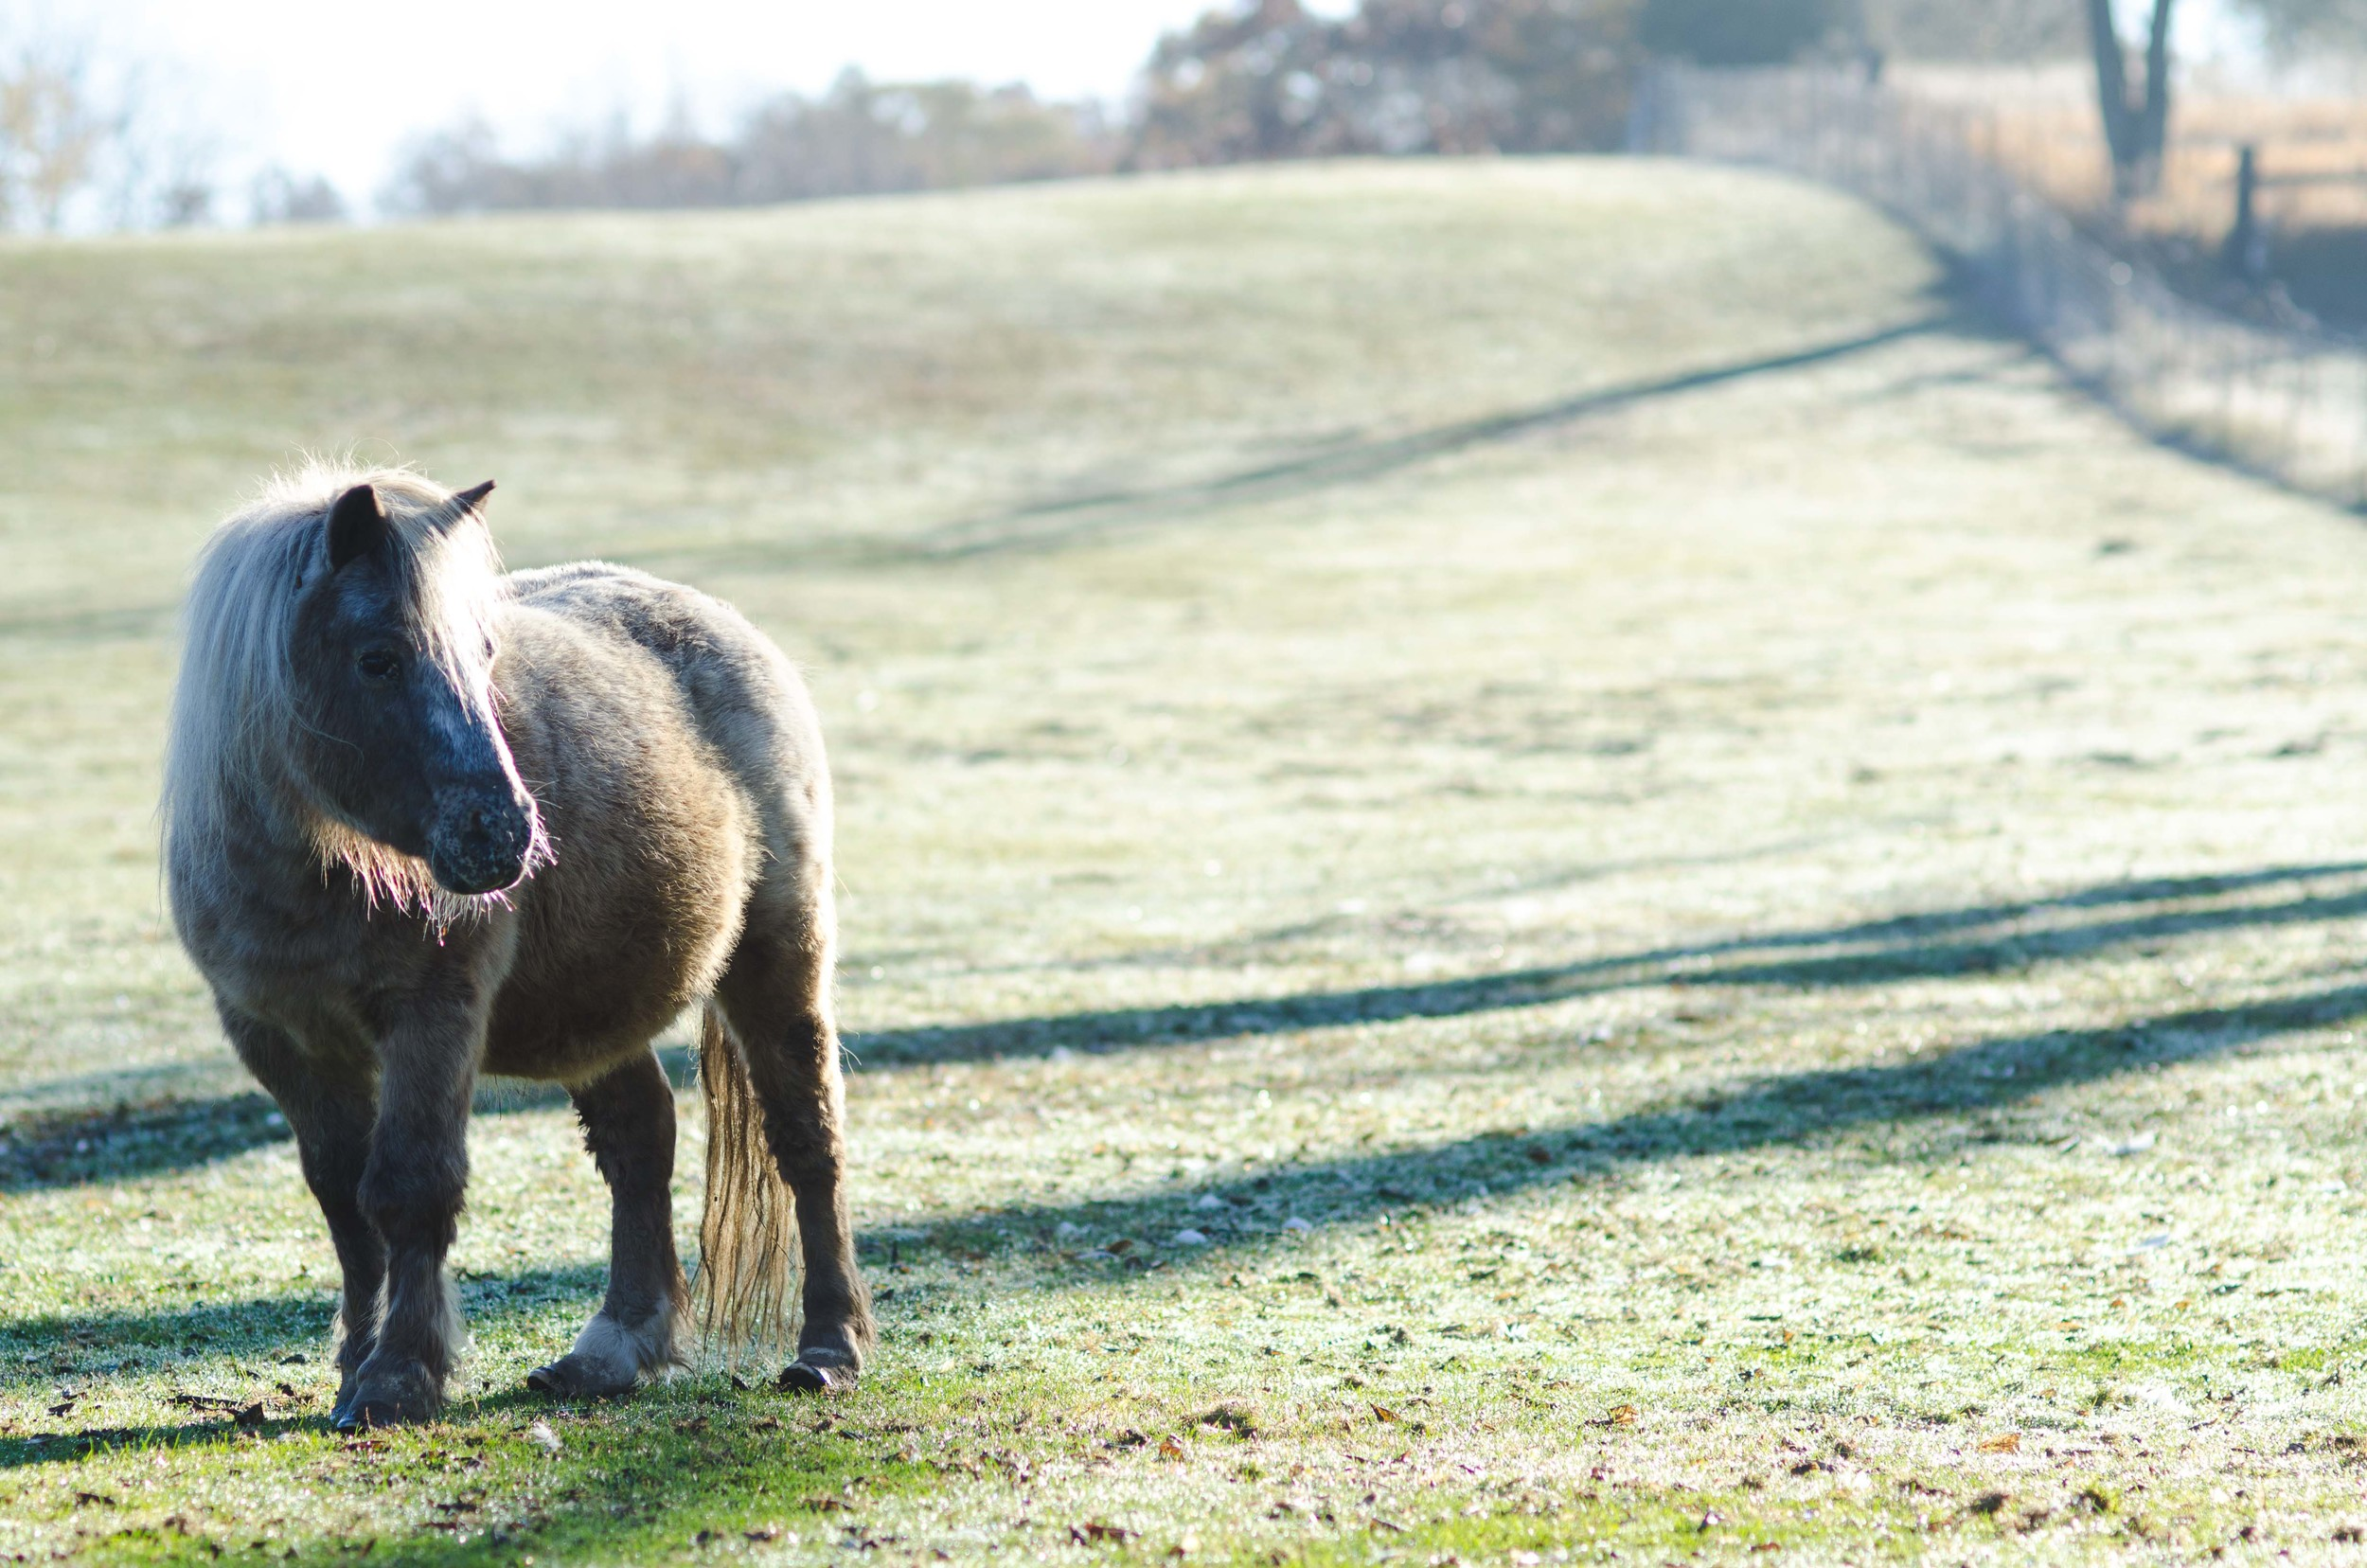 One of three miniature ponies on the farm on the field glittering with frost